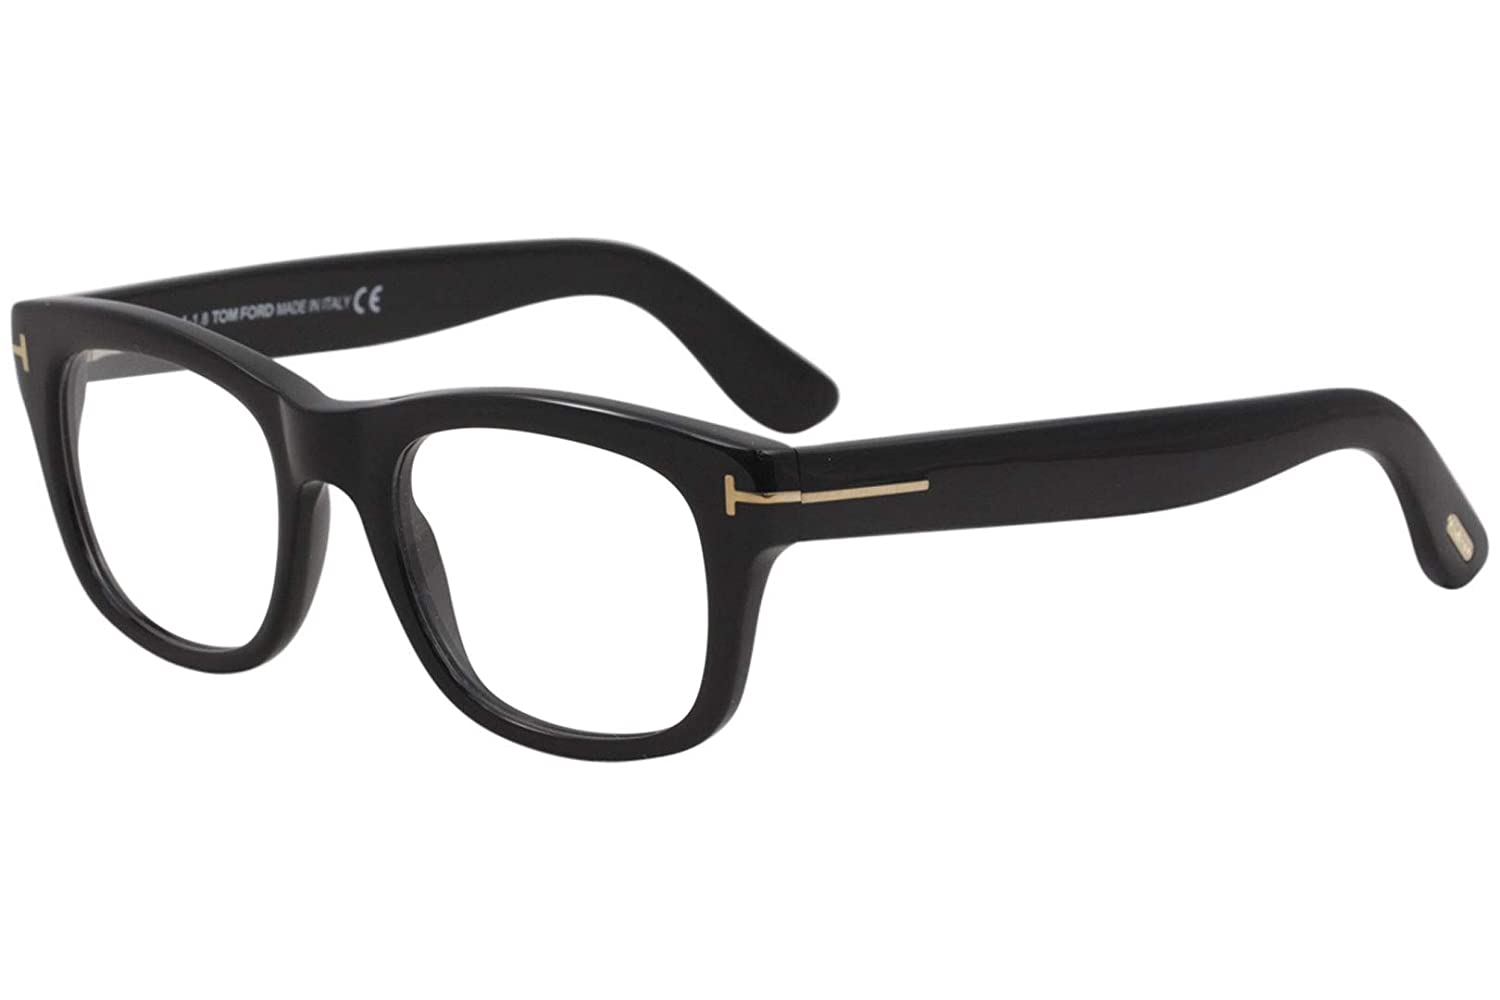 Eyeglasses Tom Ford FT 5472 001 shiny black